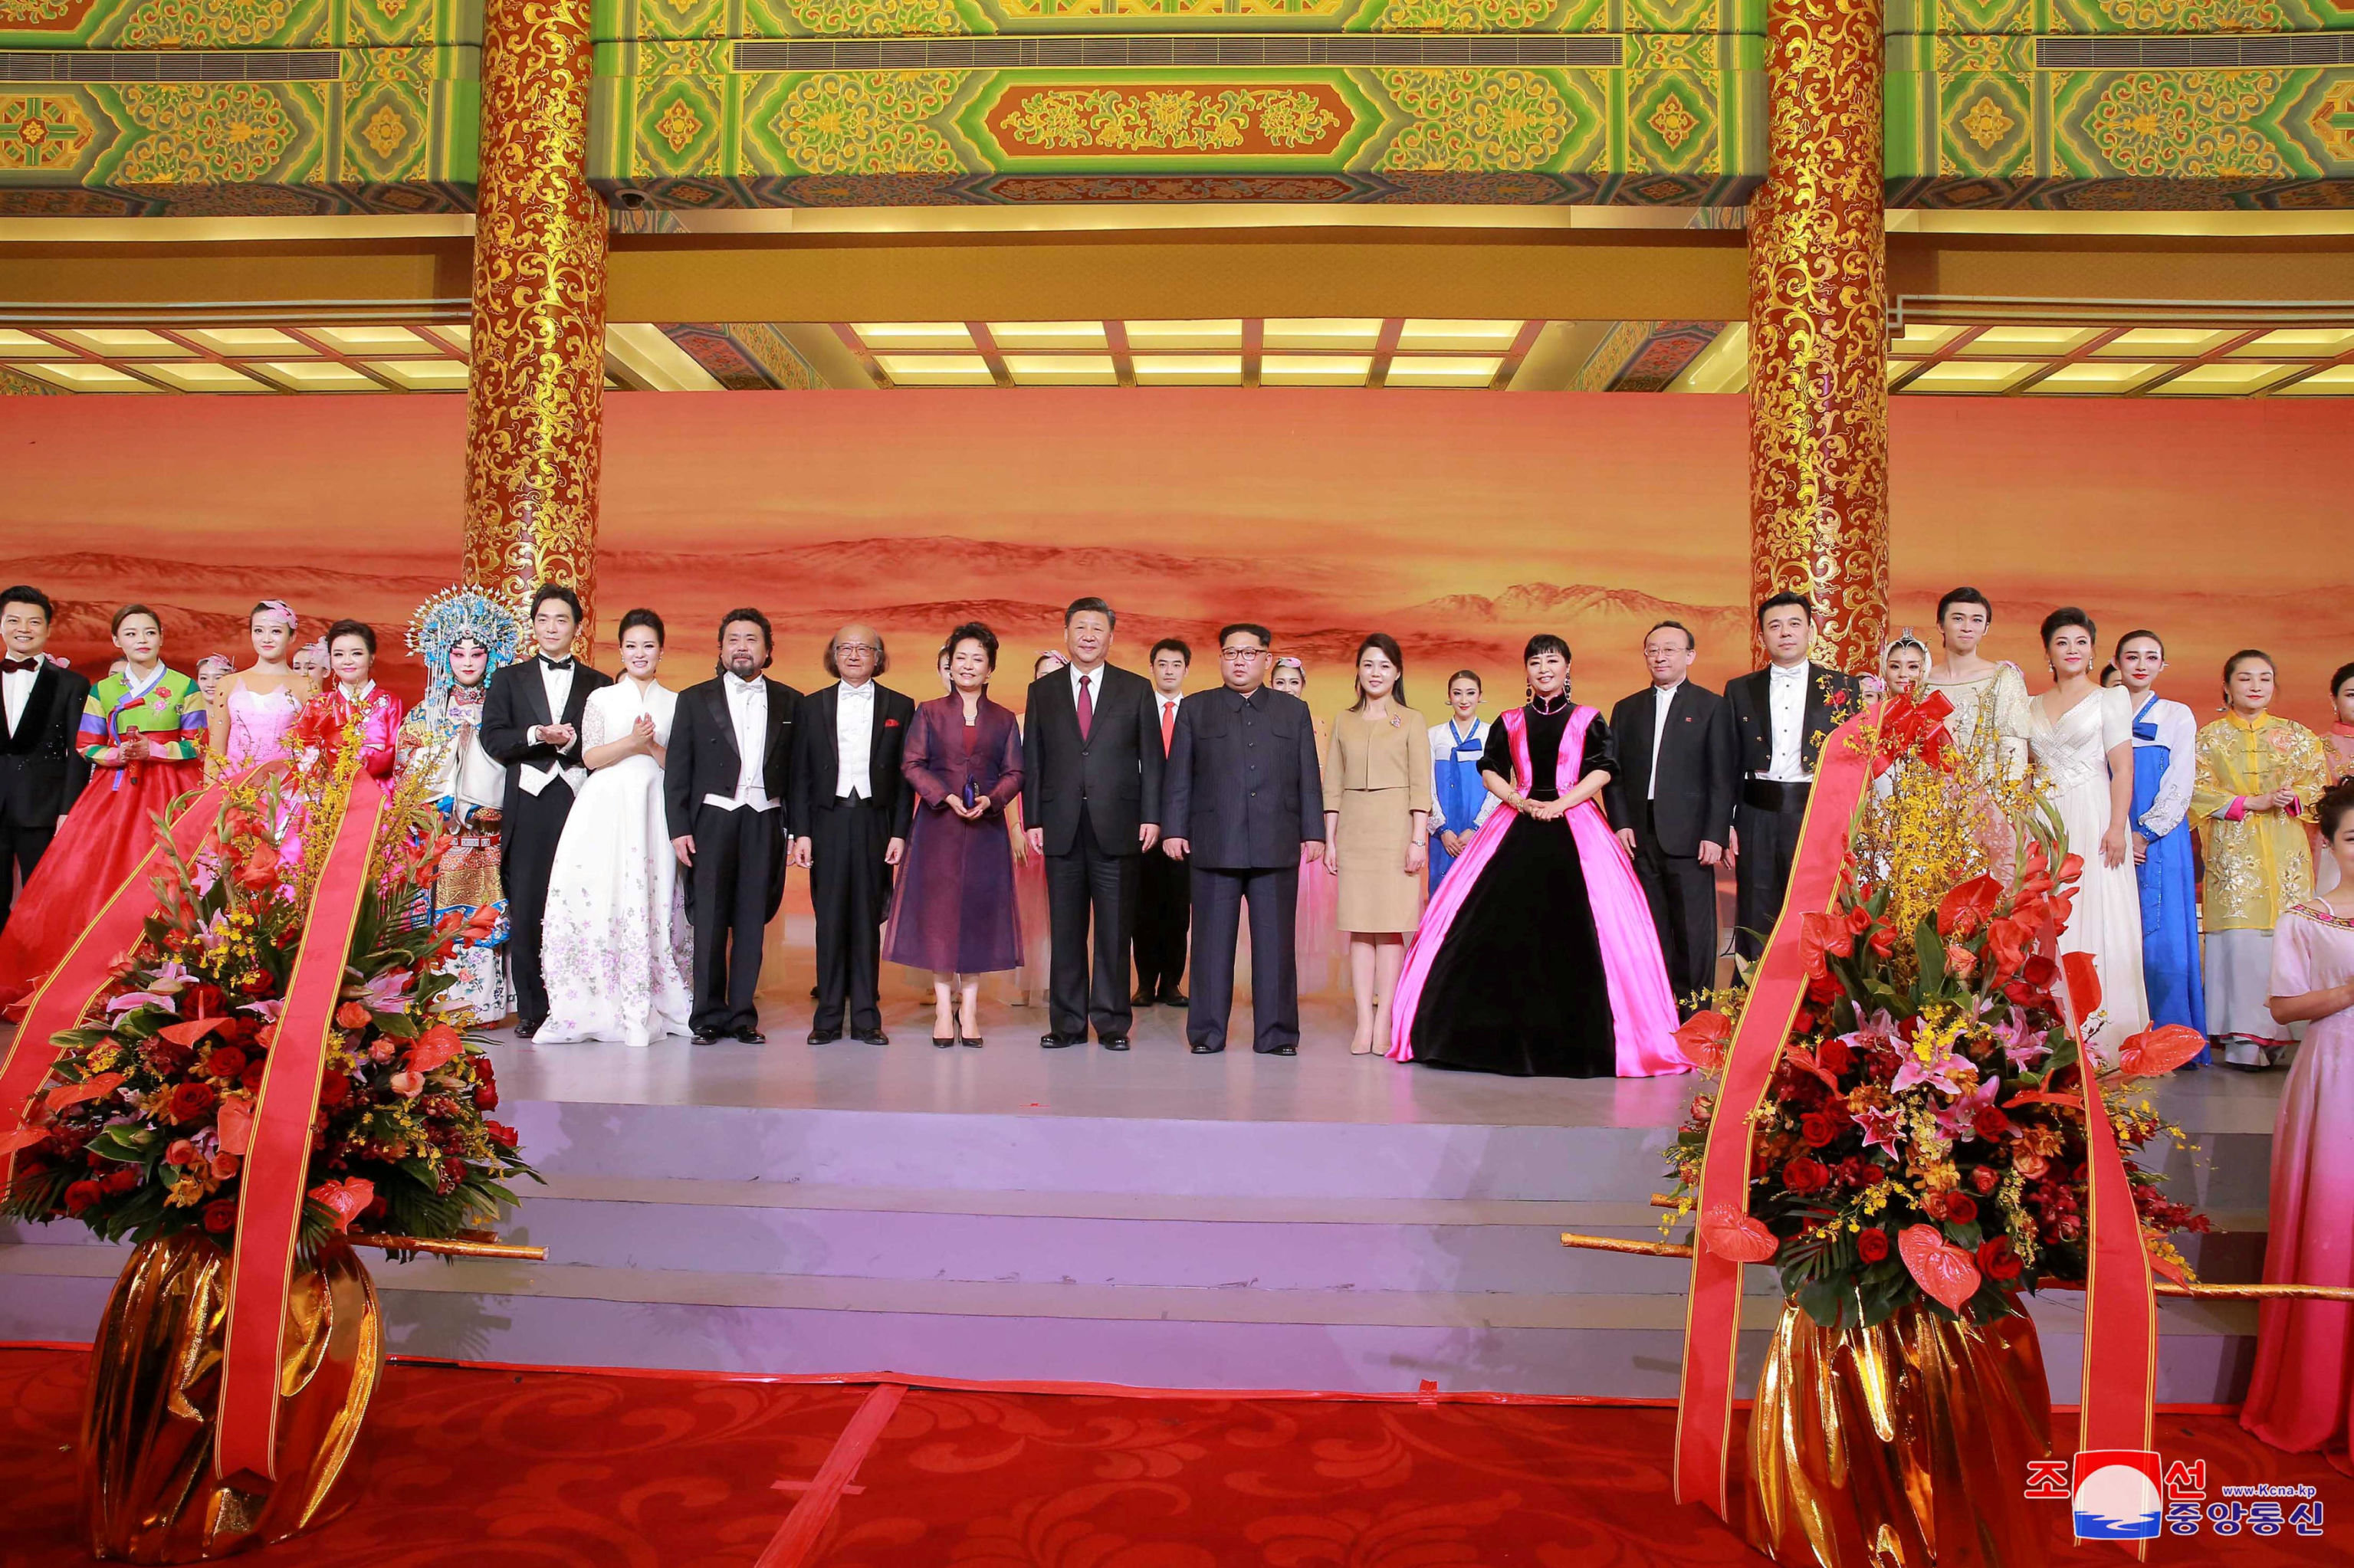 North Korean leader Kim Jong Un and wife Ri Sol Ju, and Chinese President Xi Jinping and wife Peng Liyuan attend a banquet, as Kim Jong Un paid an unofficial visit to Beijing, China